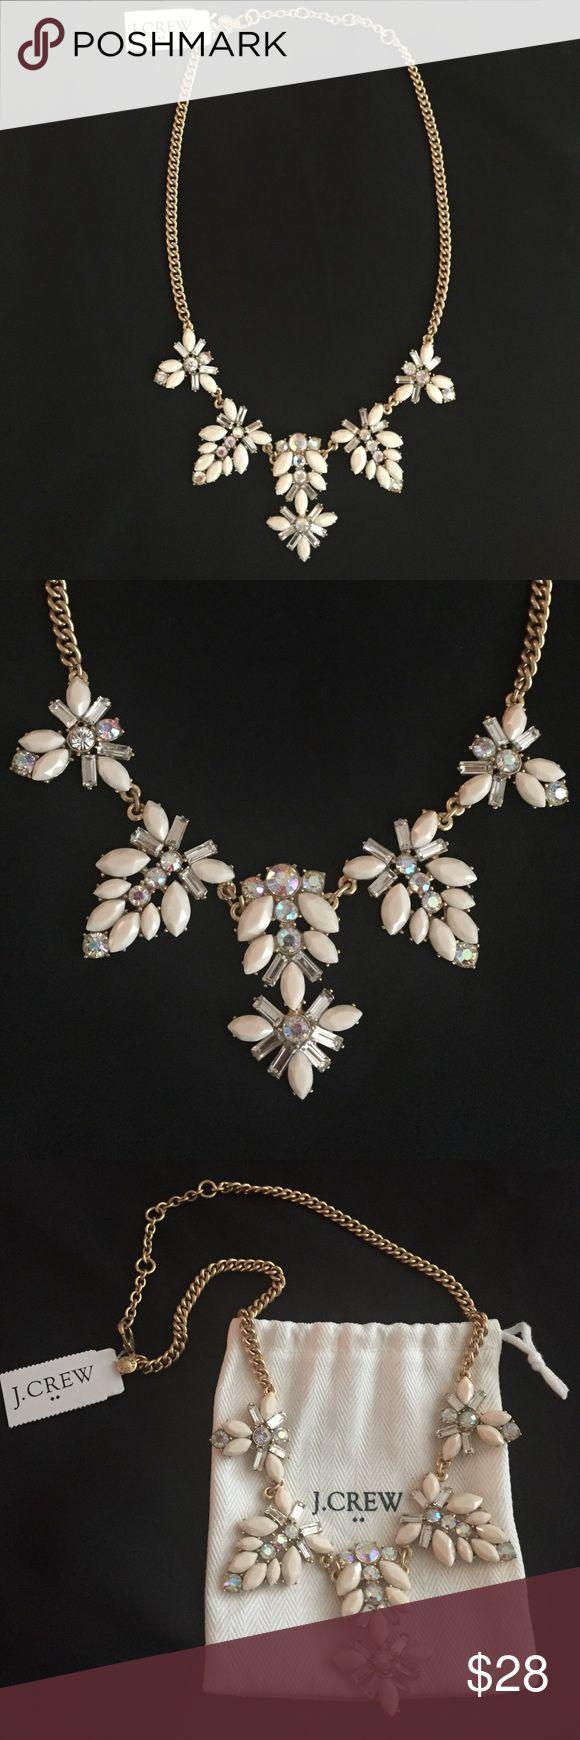 Mariage - J Crew Light Pink Necklace NWT